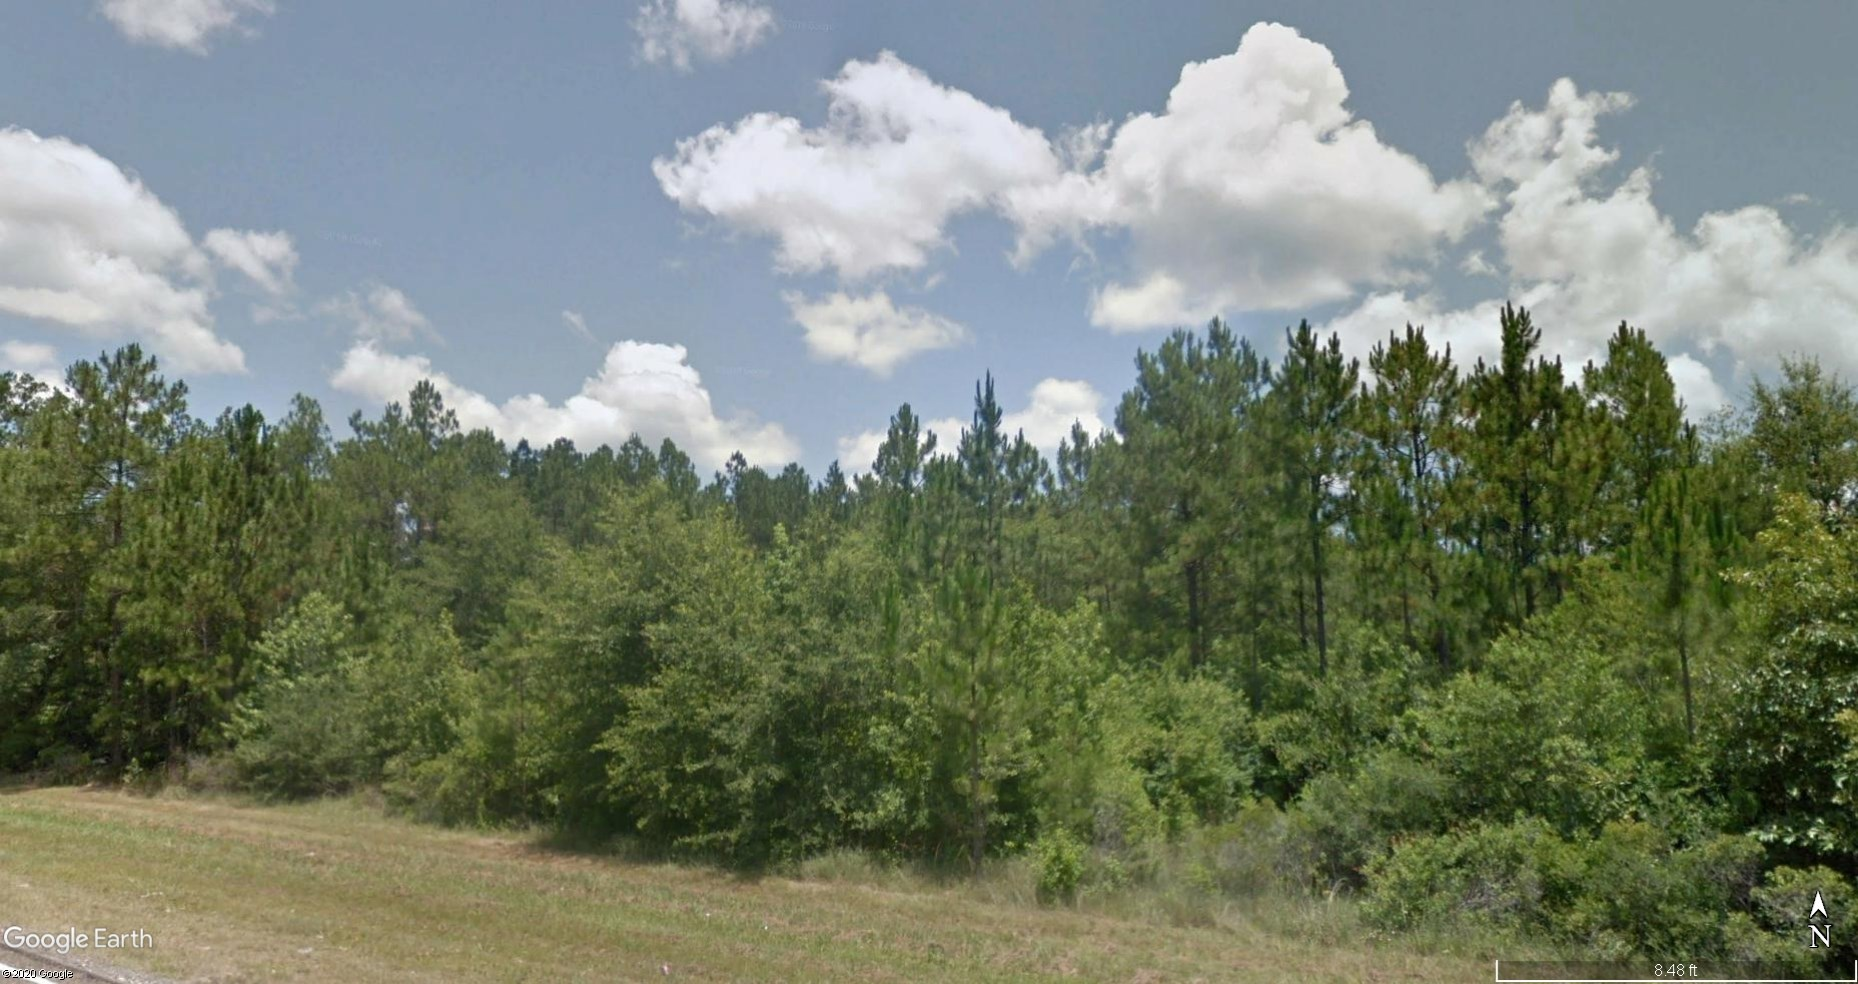 220.9 ACRES HUNTING TIMBER LAND FOR SALE NEAR KOUNTZE TEXAS